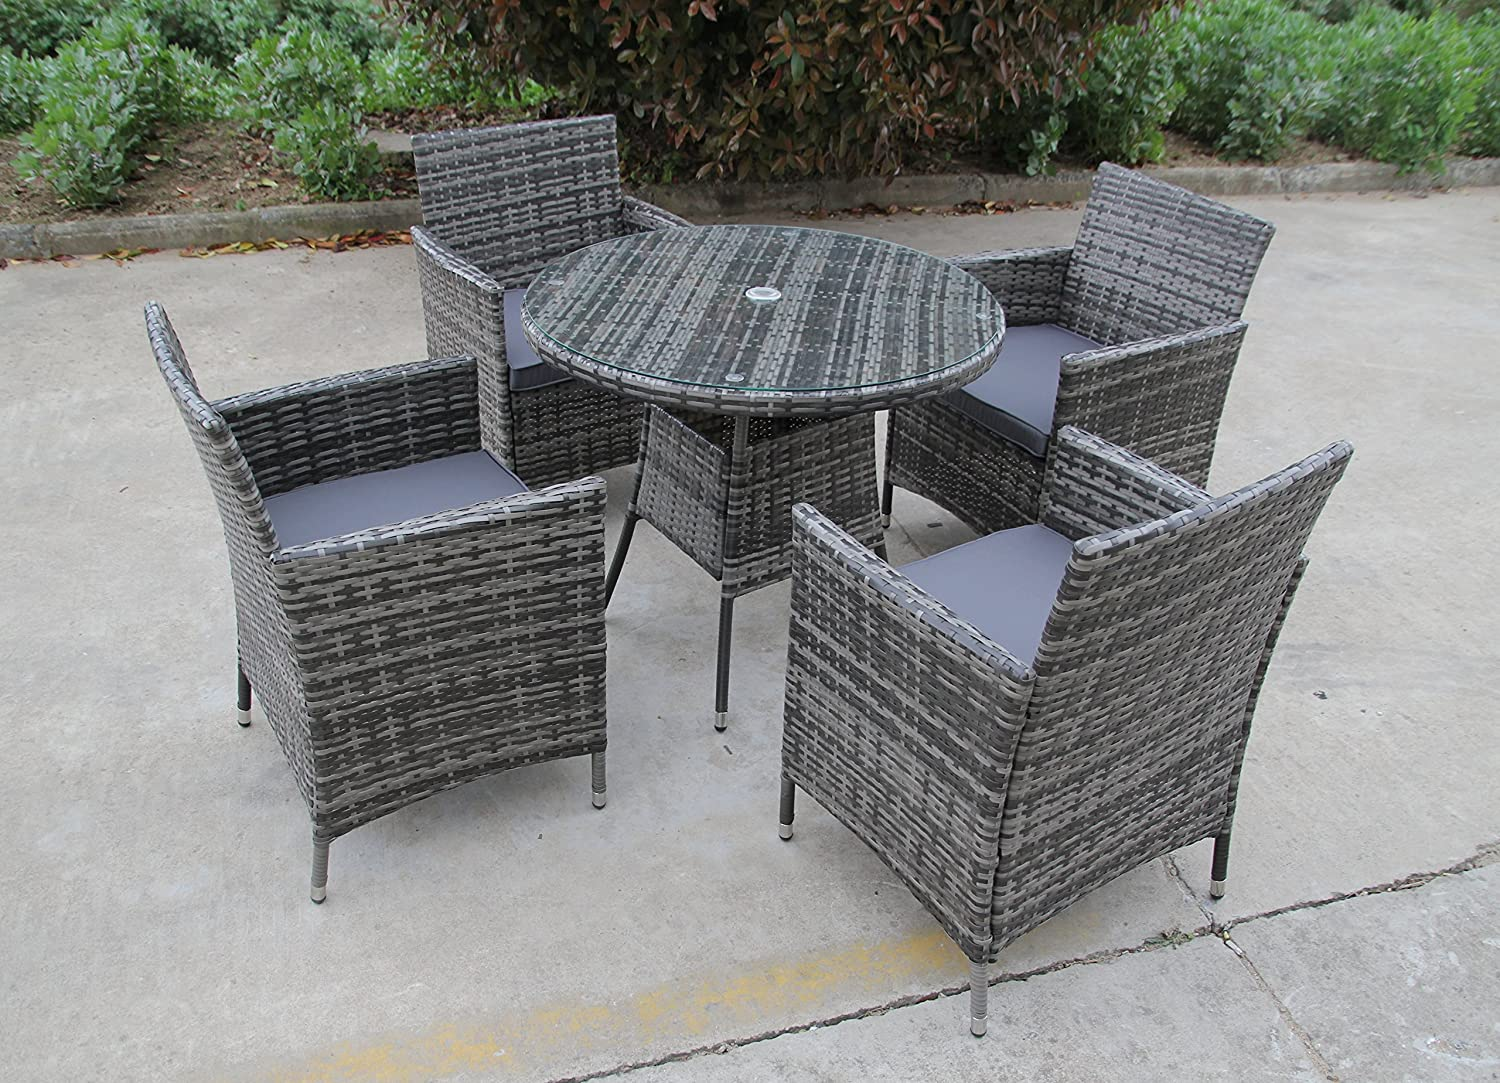 Uk leisure world new bistro 2 4 6 seater rattan wicker dining outdoor garden furniture set grey 4 seater amazon co uk garden outdoors